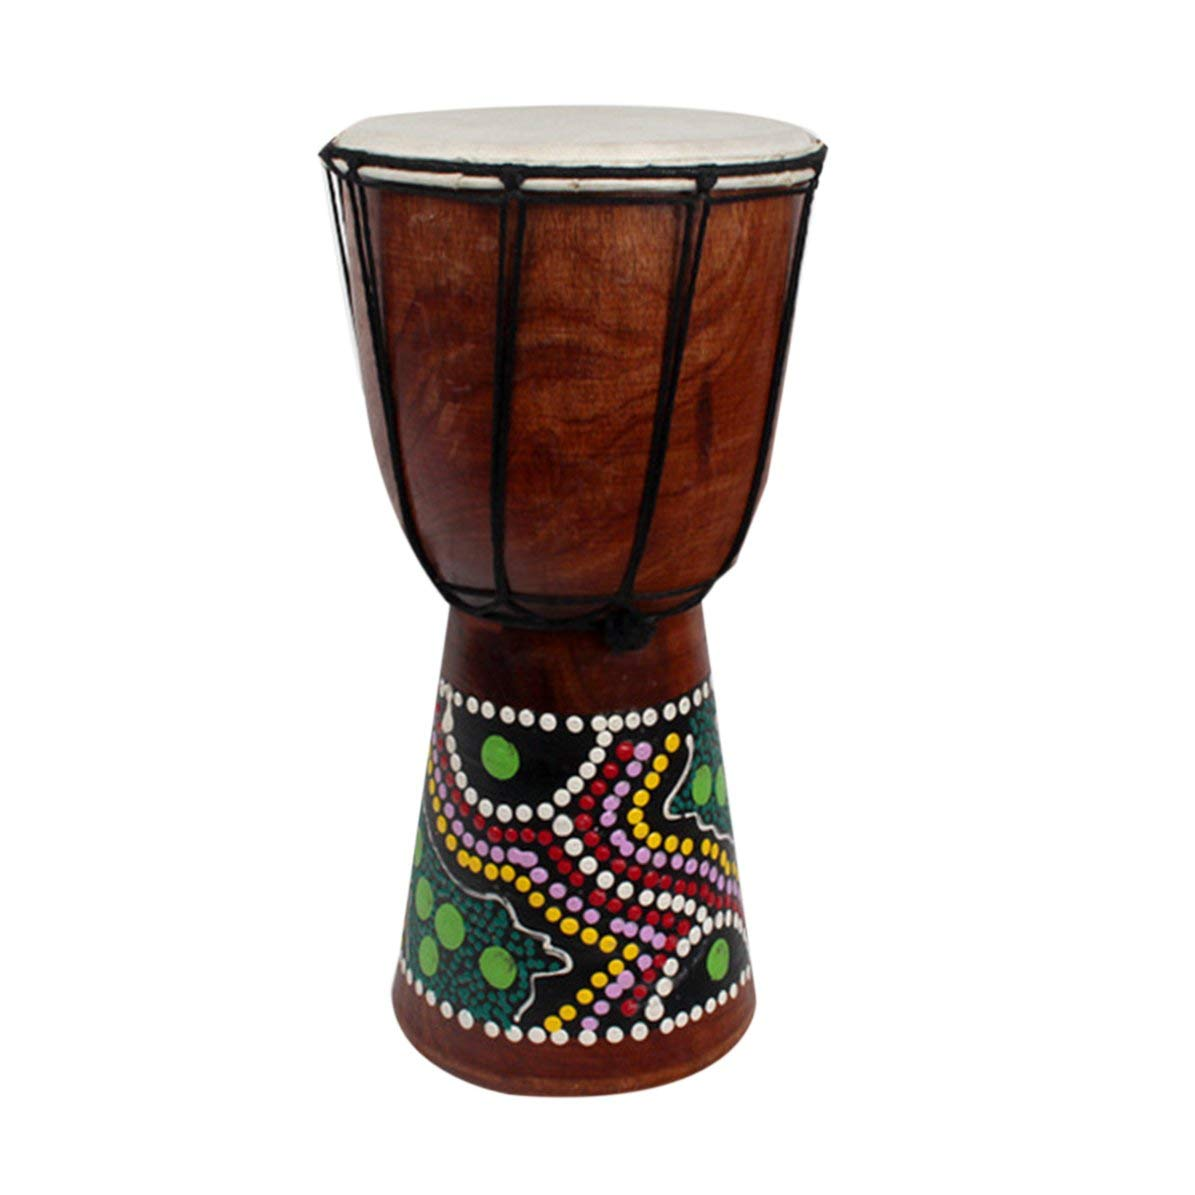 6 Inch African Djembe Percussion Hand Drum Mahogany Wooden Jambe Doumbek Drummer with Pattern Pure Goat Skin Surface by DoMoment